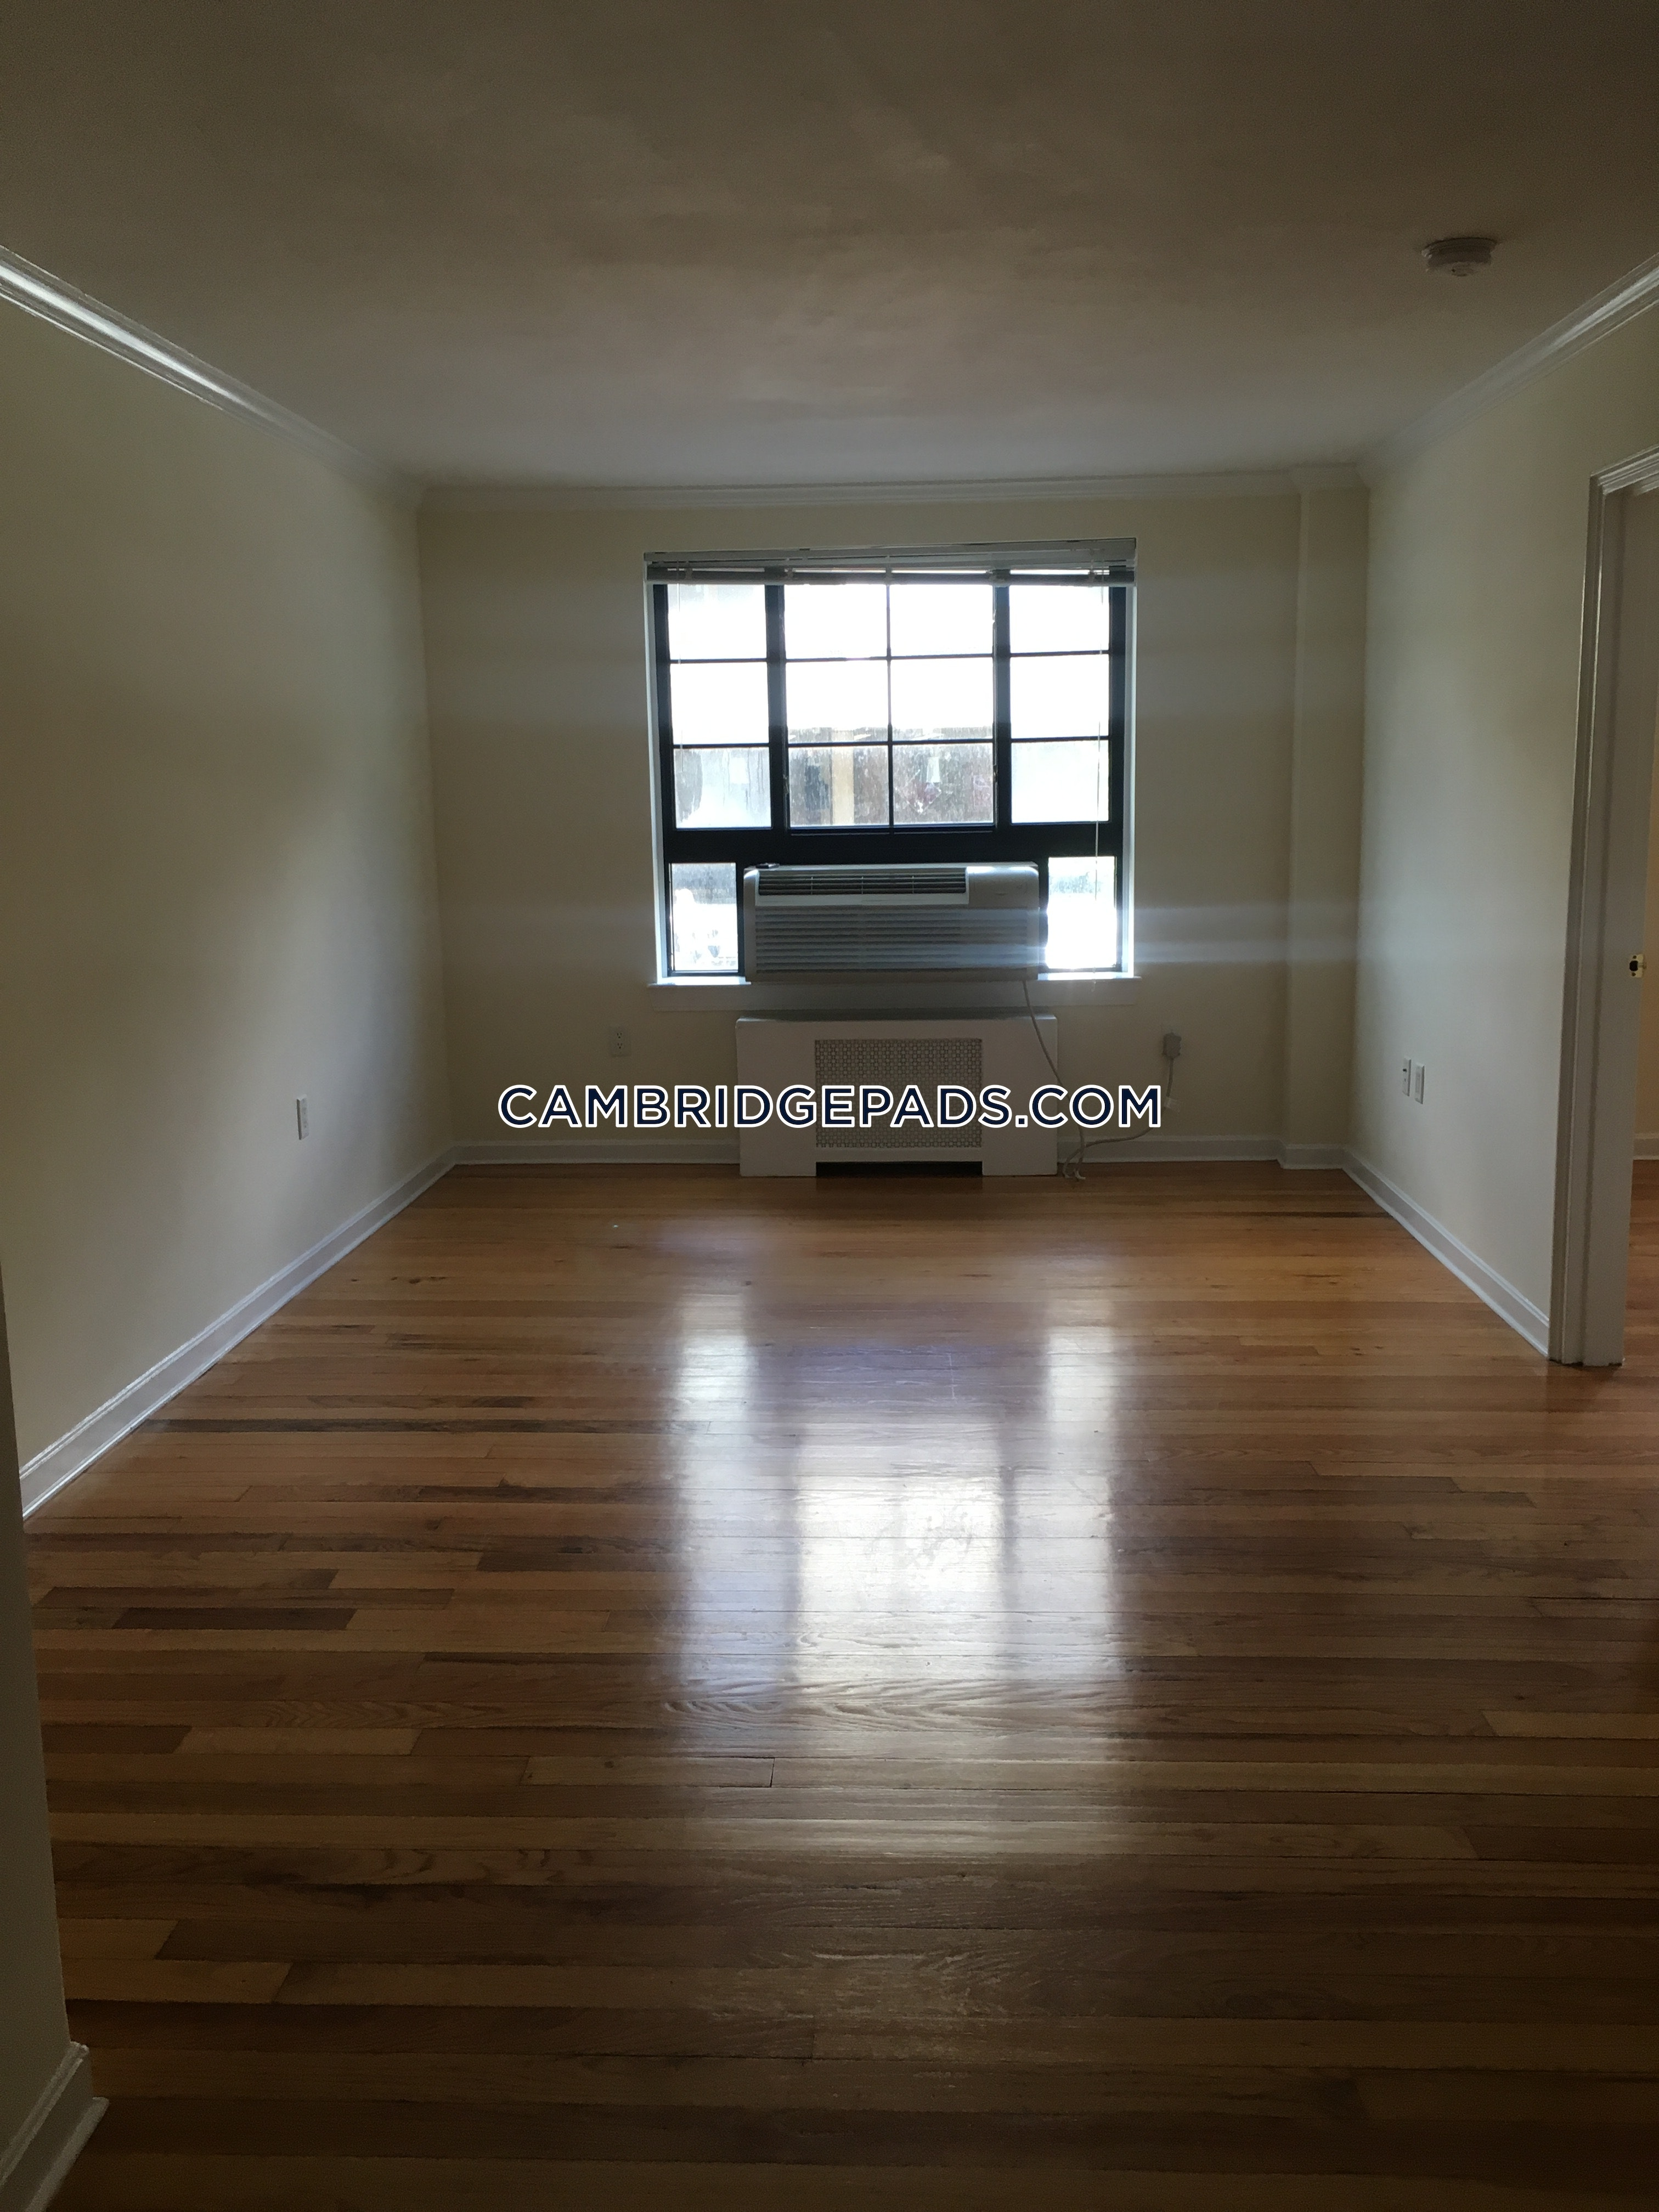 2 Beds 1 Bath - Cambridge - Harvard Square $3,615 - Cambridge - Harvard Square $3,615